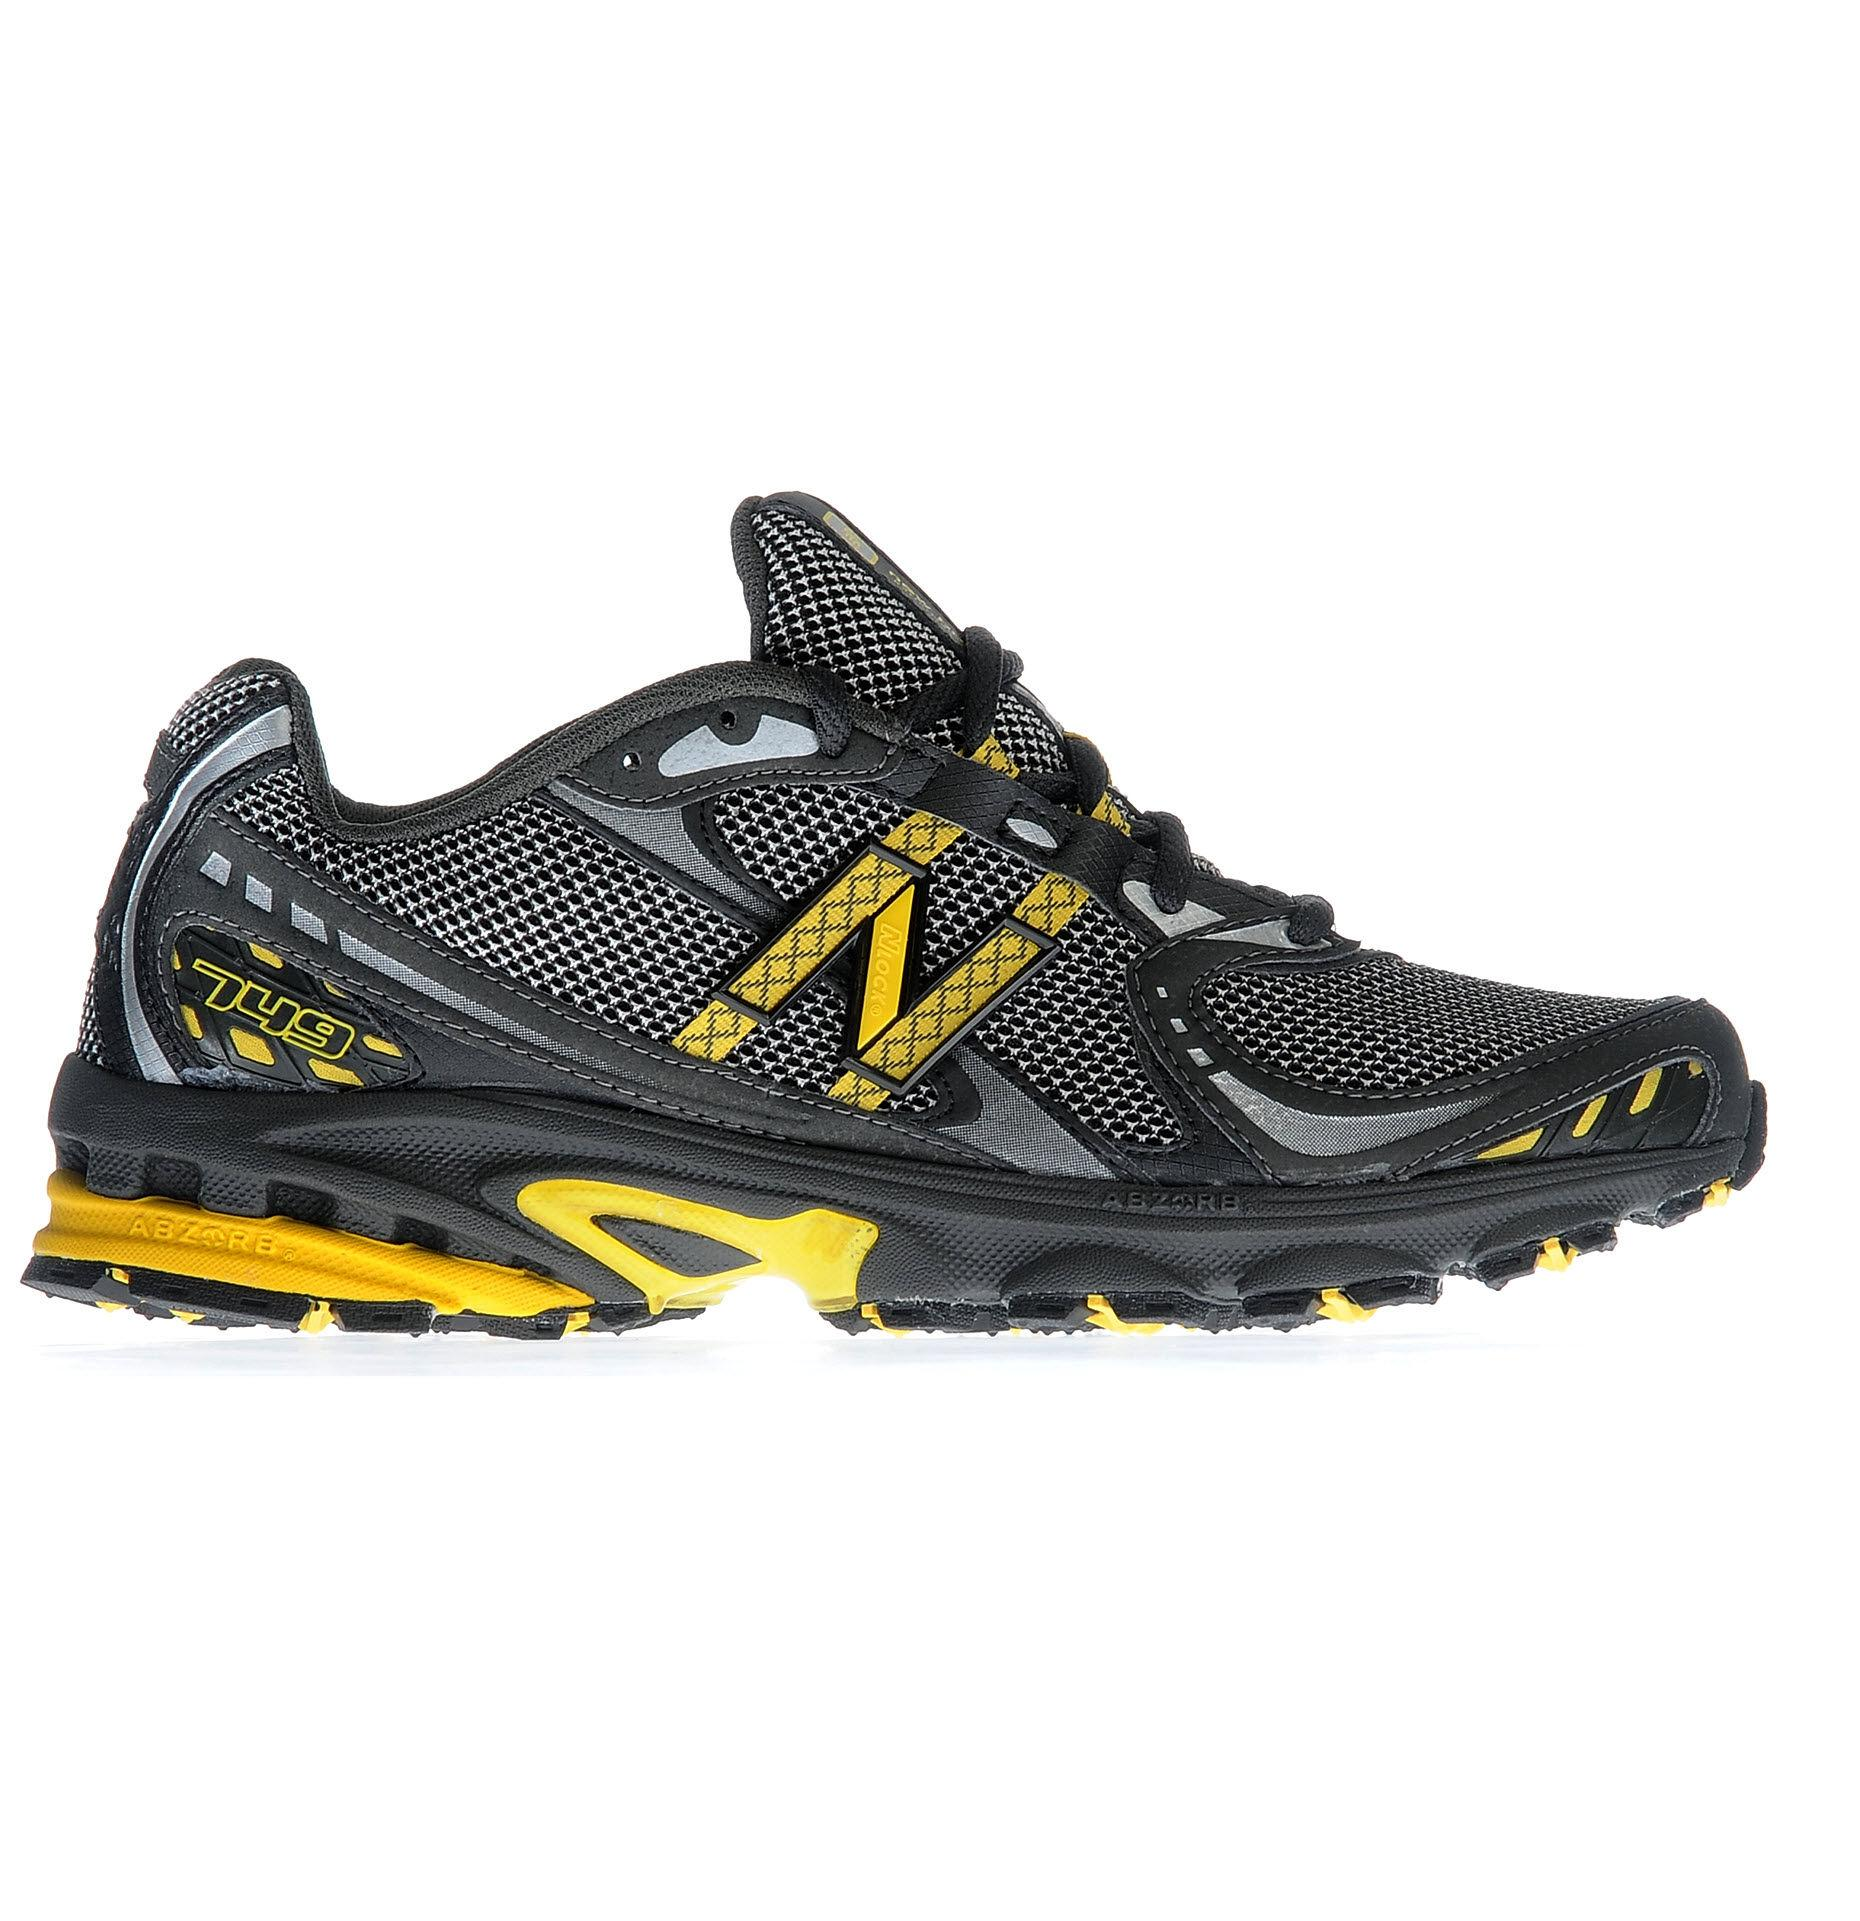 Foto Zapatillas de Trail New Balance - MR749 - D Width UK7 Grey/Yellow